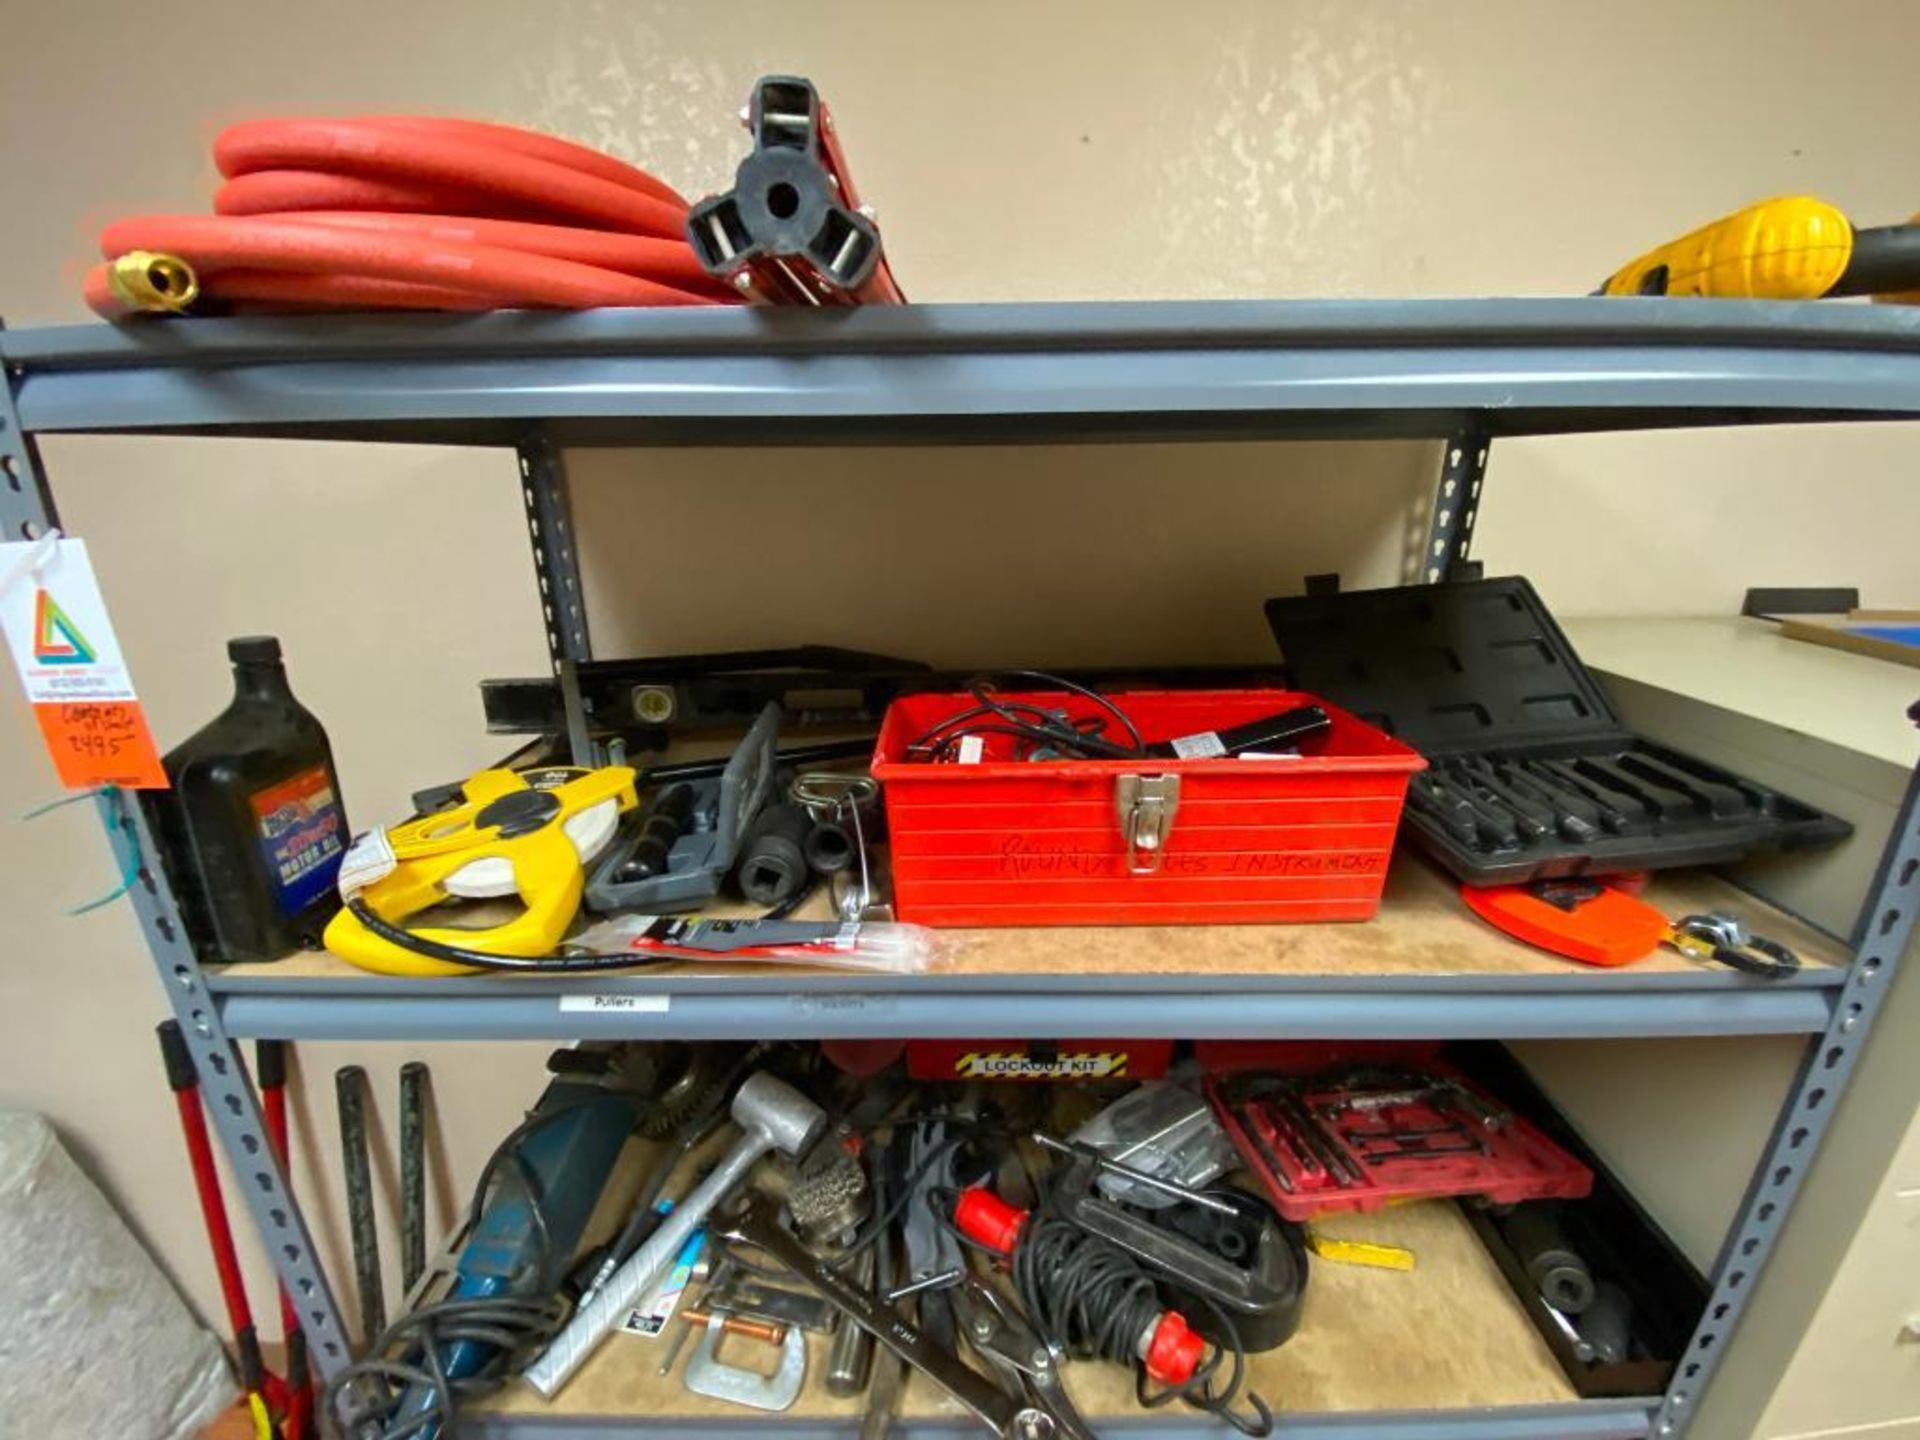 various tools includes bits, large wrenches, lockout tagout kit, grinder - Image 3 of 18